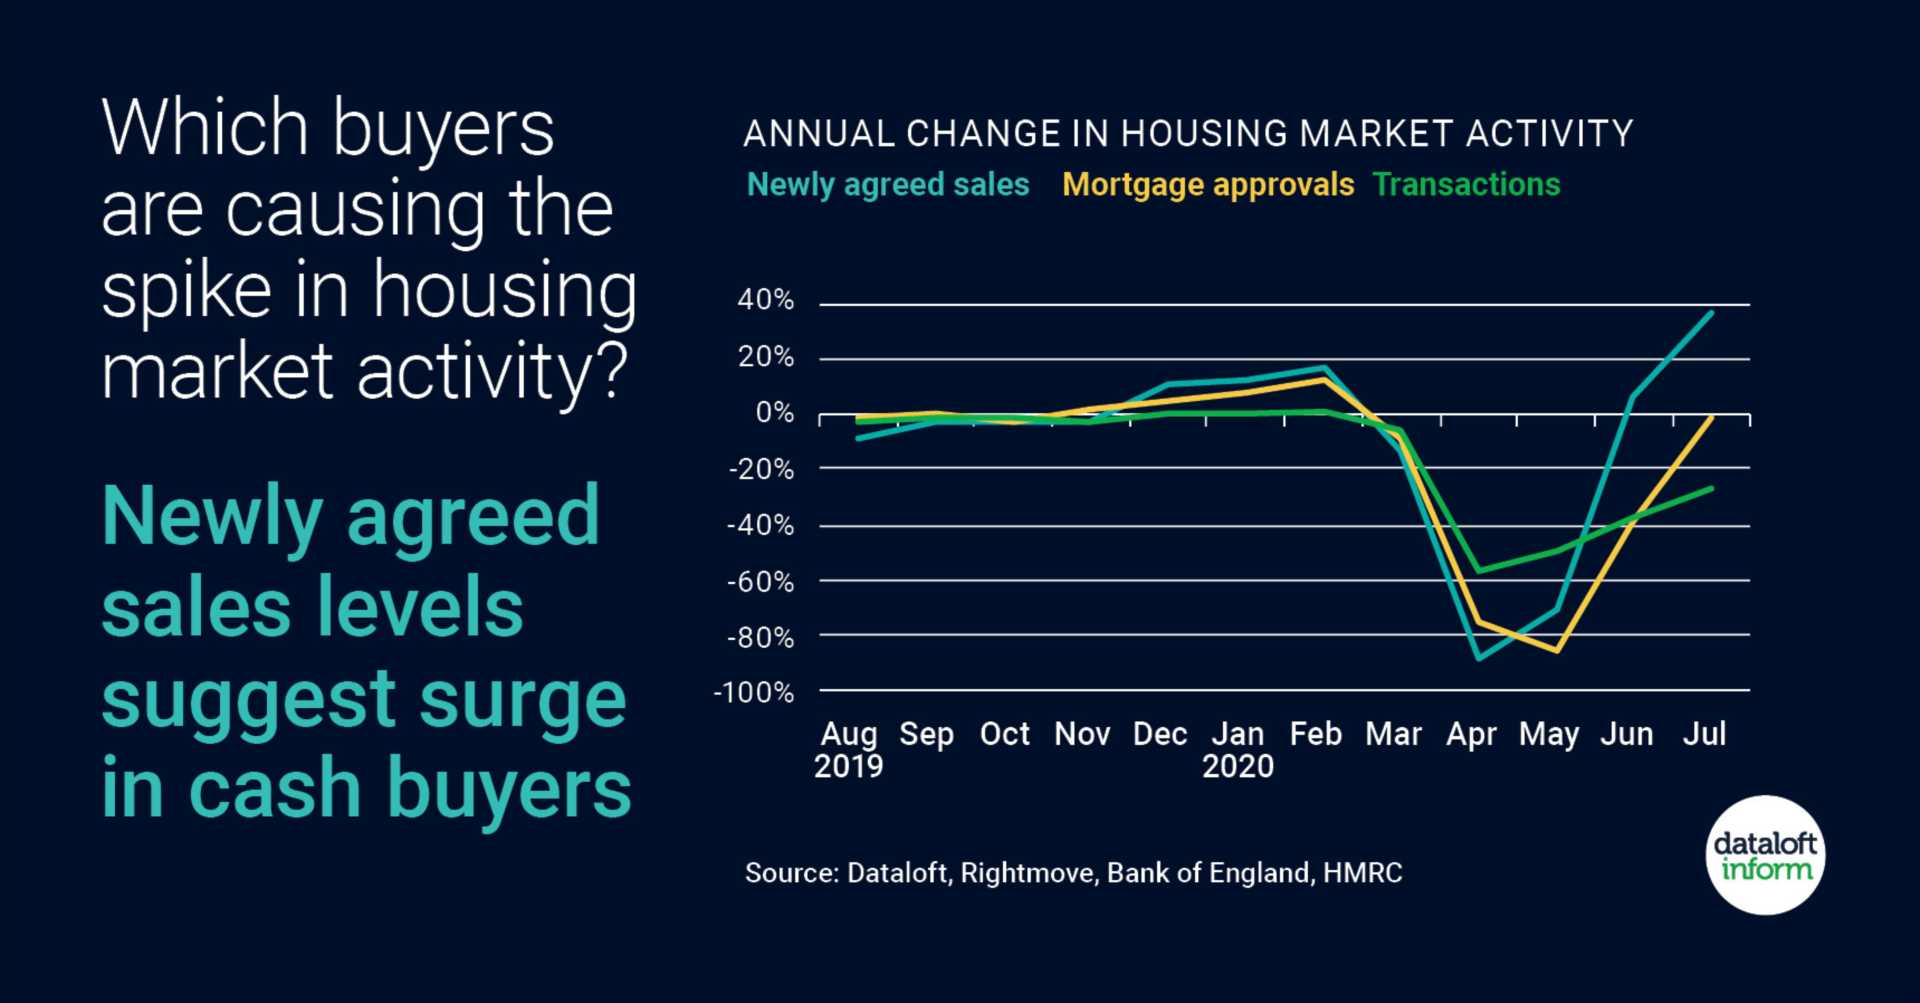 Which buyers are causing the spike in housing market activity?